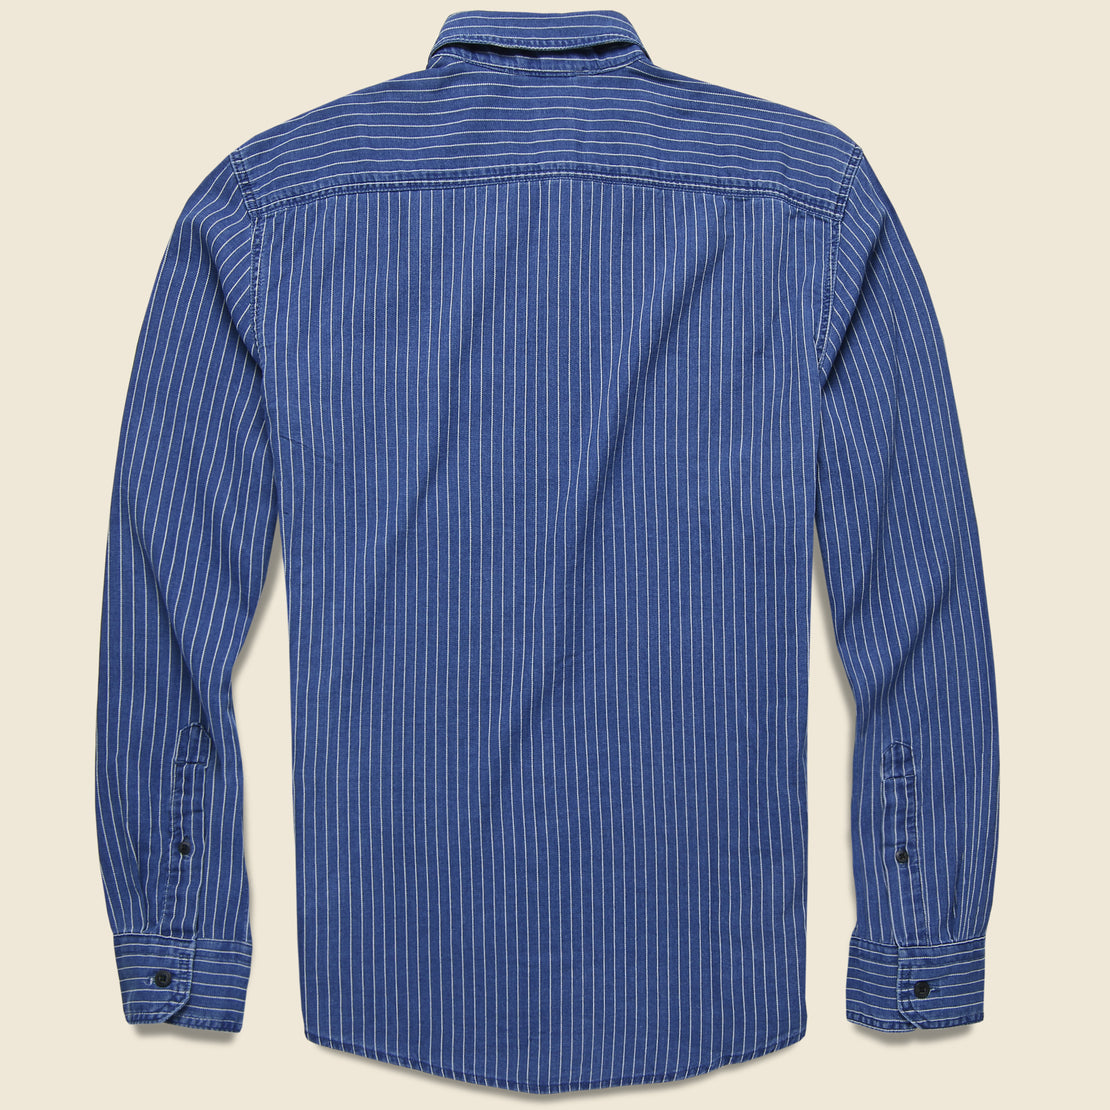 Sunset One-Pocket Slim Shirt - Indigo Stripe